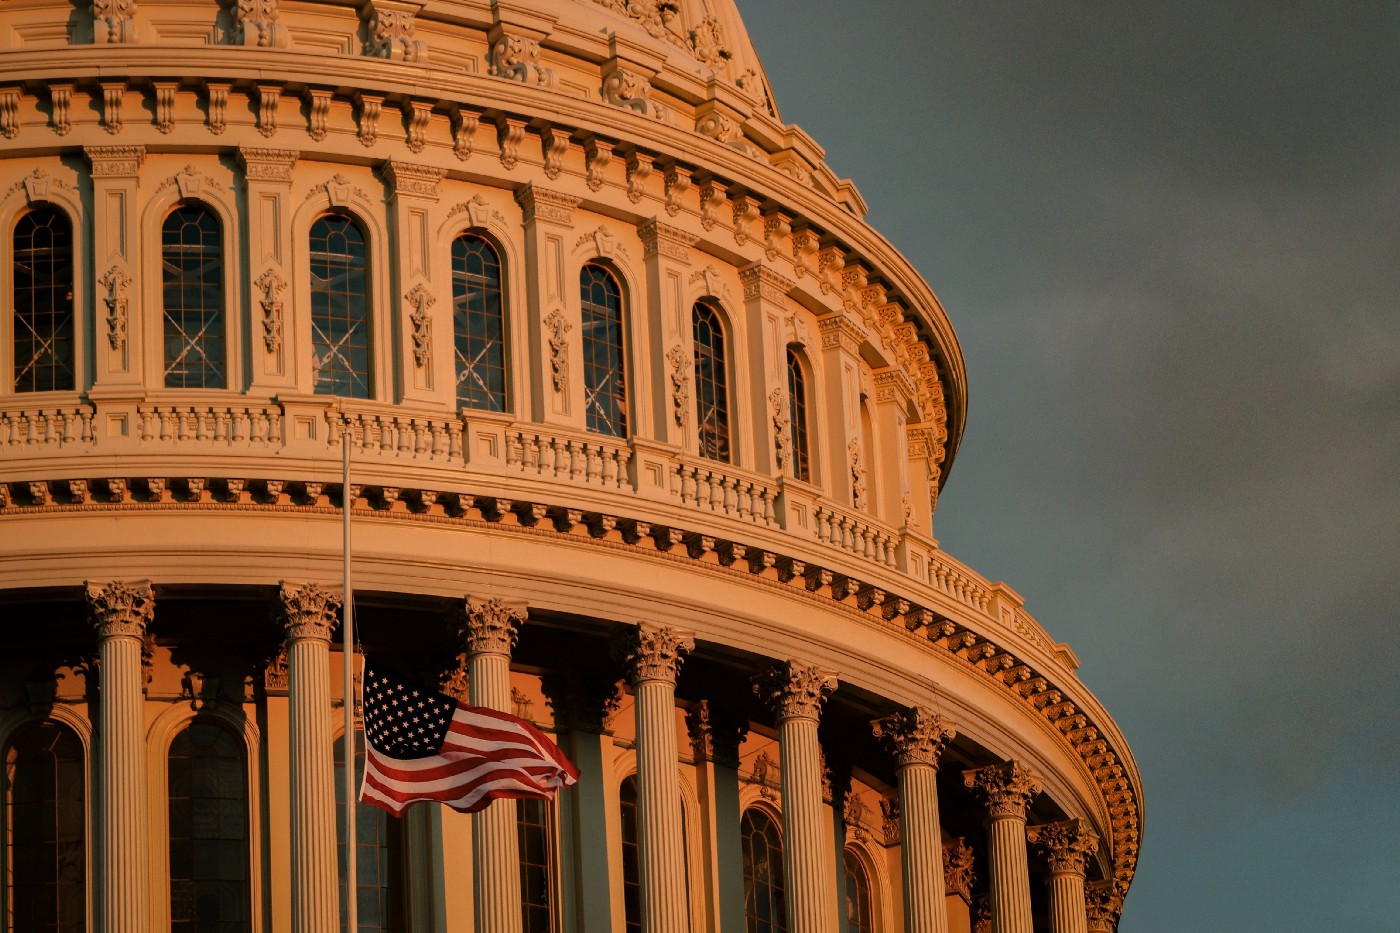 Close up of columns in the dome of the US national capitol building with flag waving at half-mast at sunset